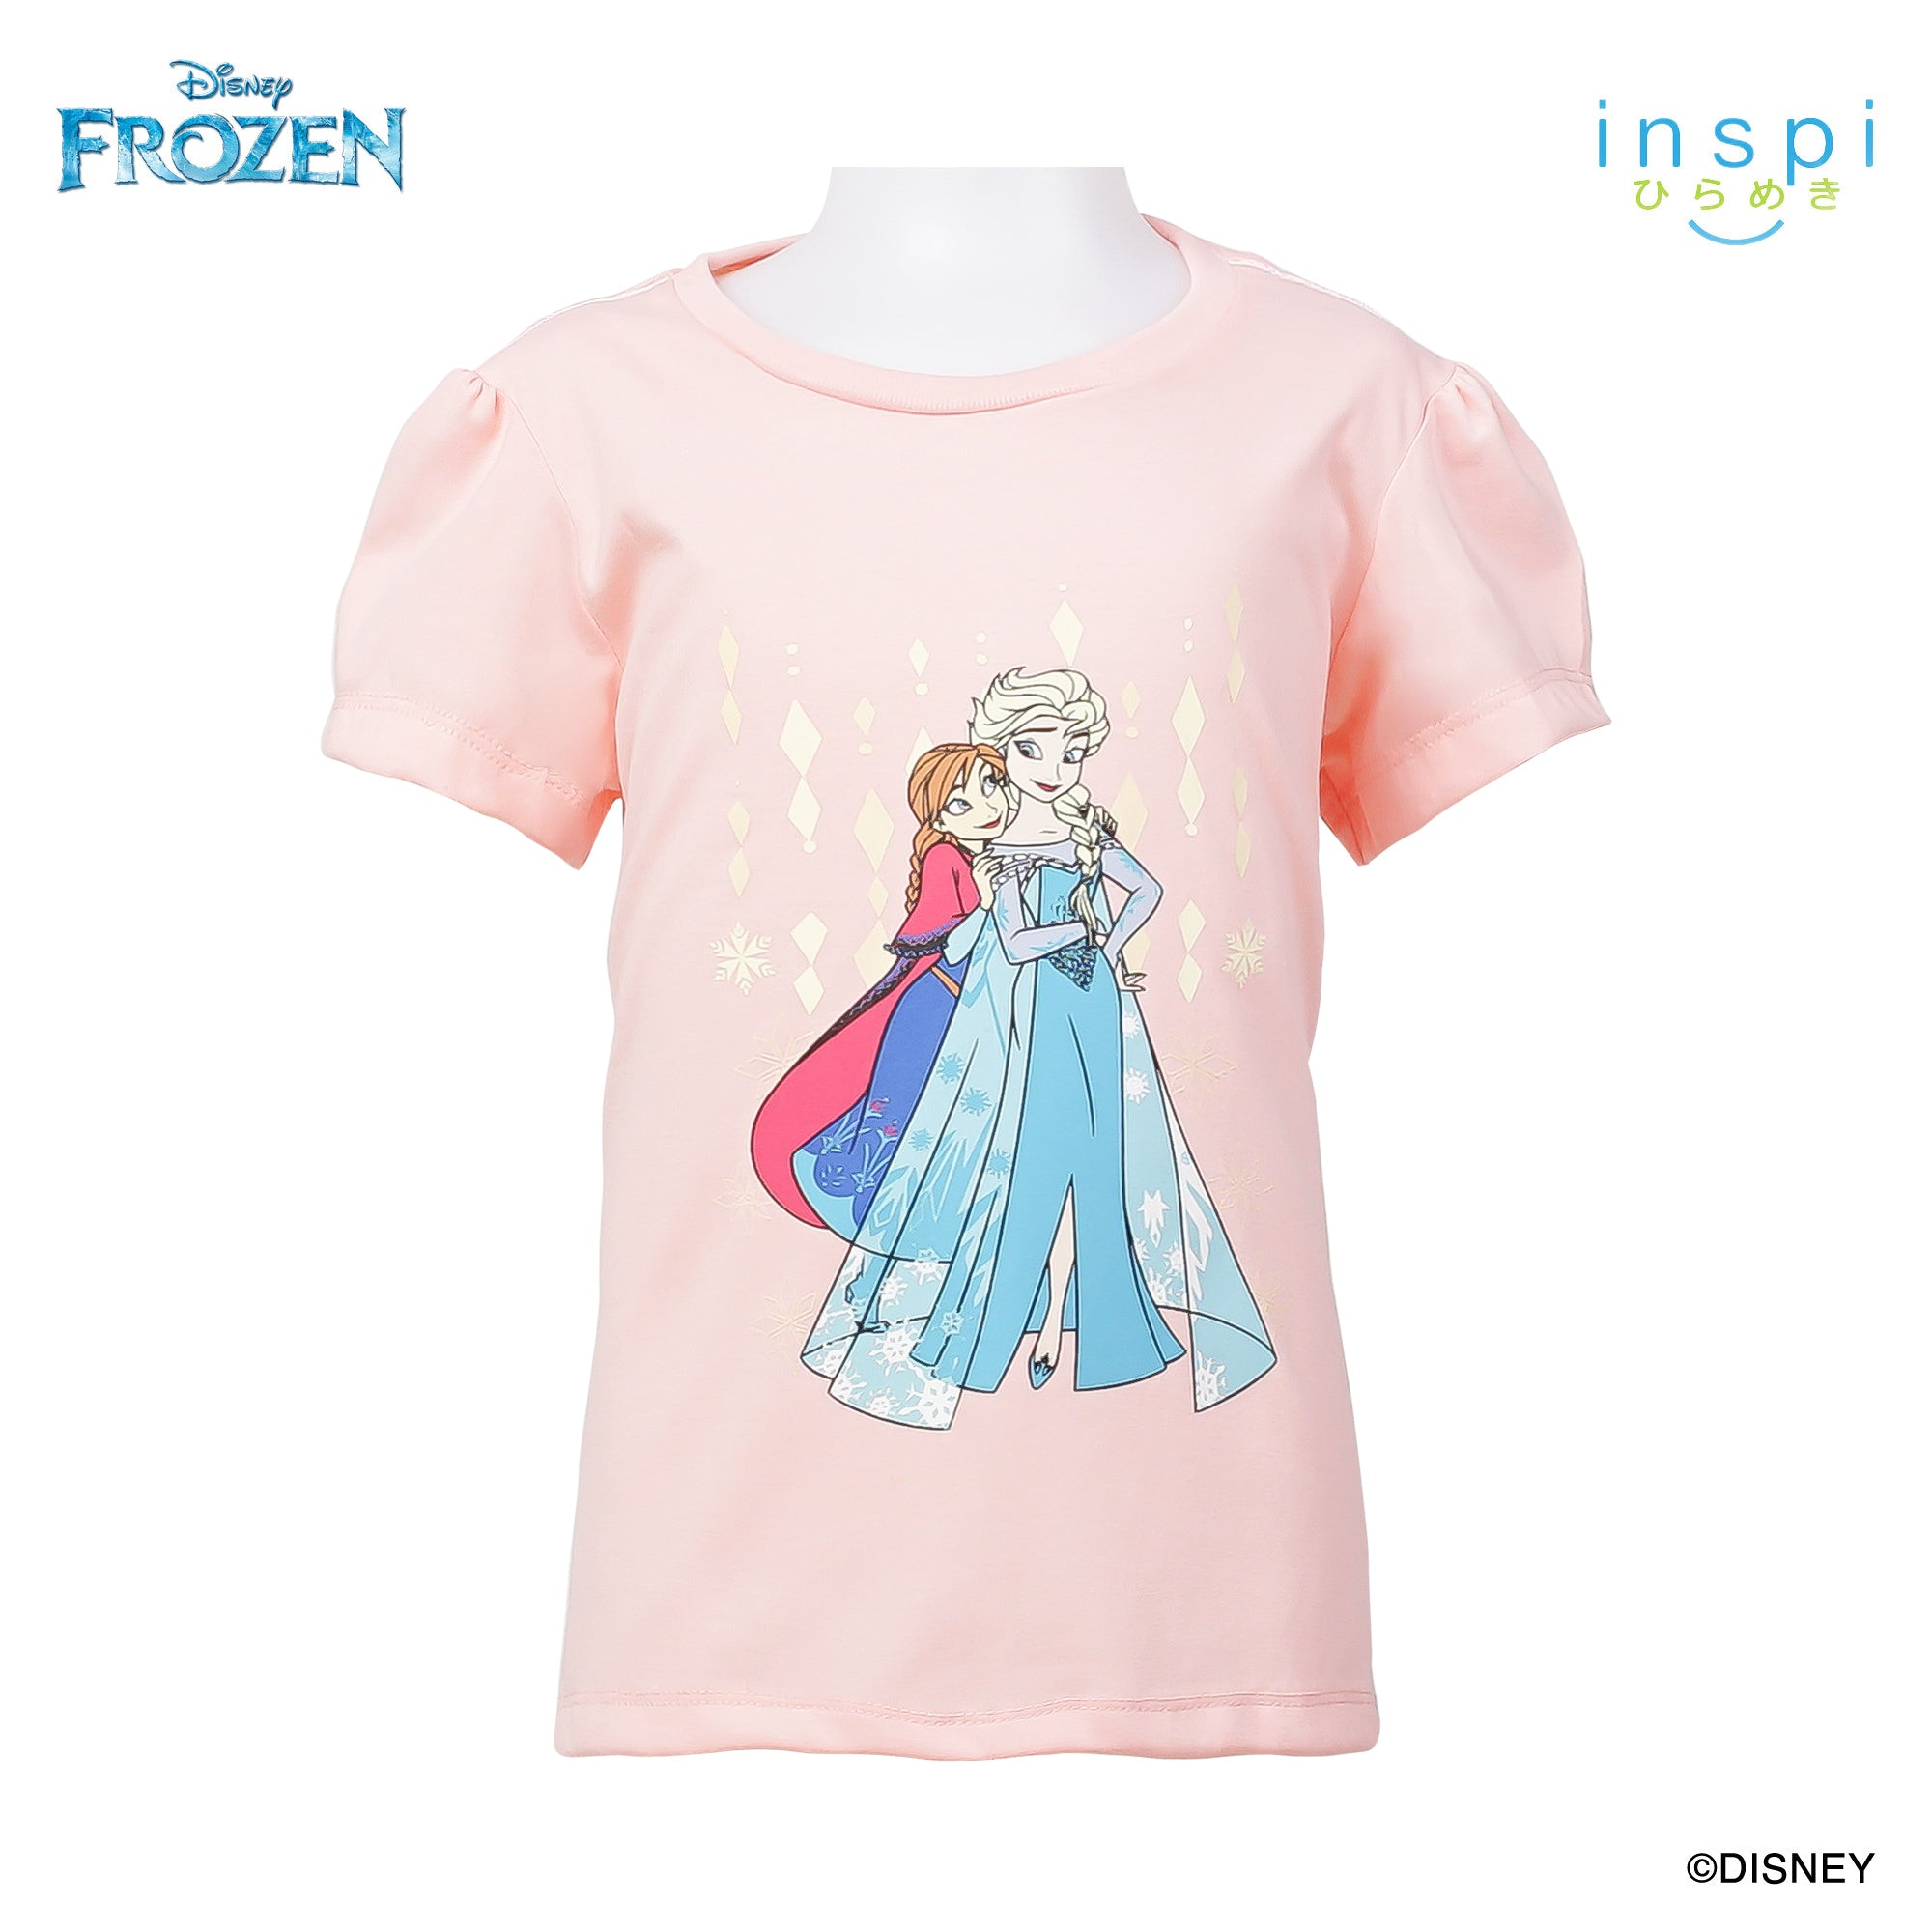 Disney Frozen Elsa and Anna Tshirt in Dairy Peach for Girls Inspi Shirt